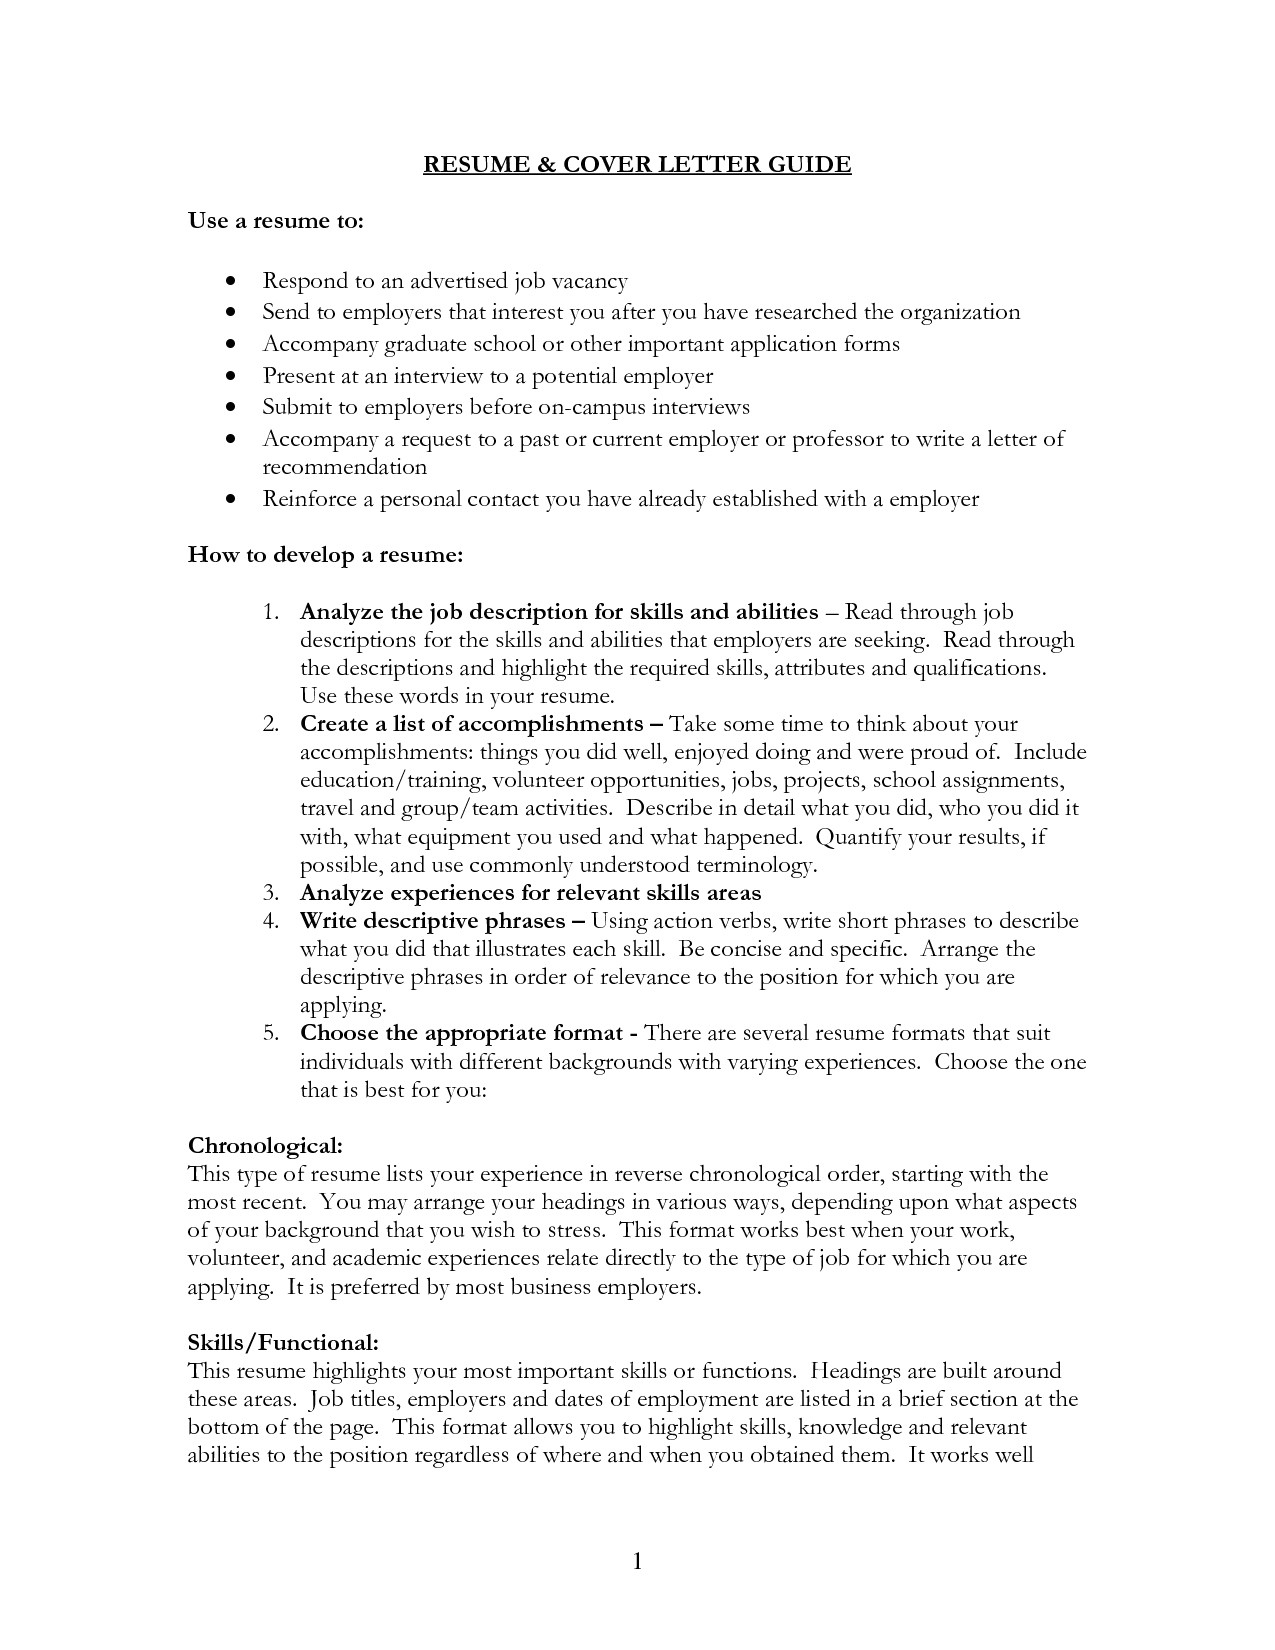 cover letter for resume what to write